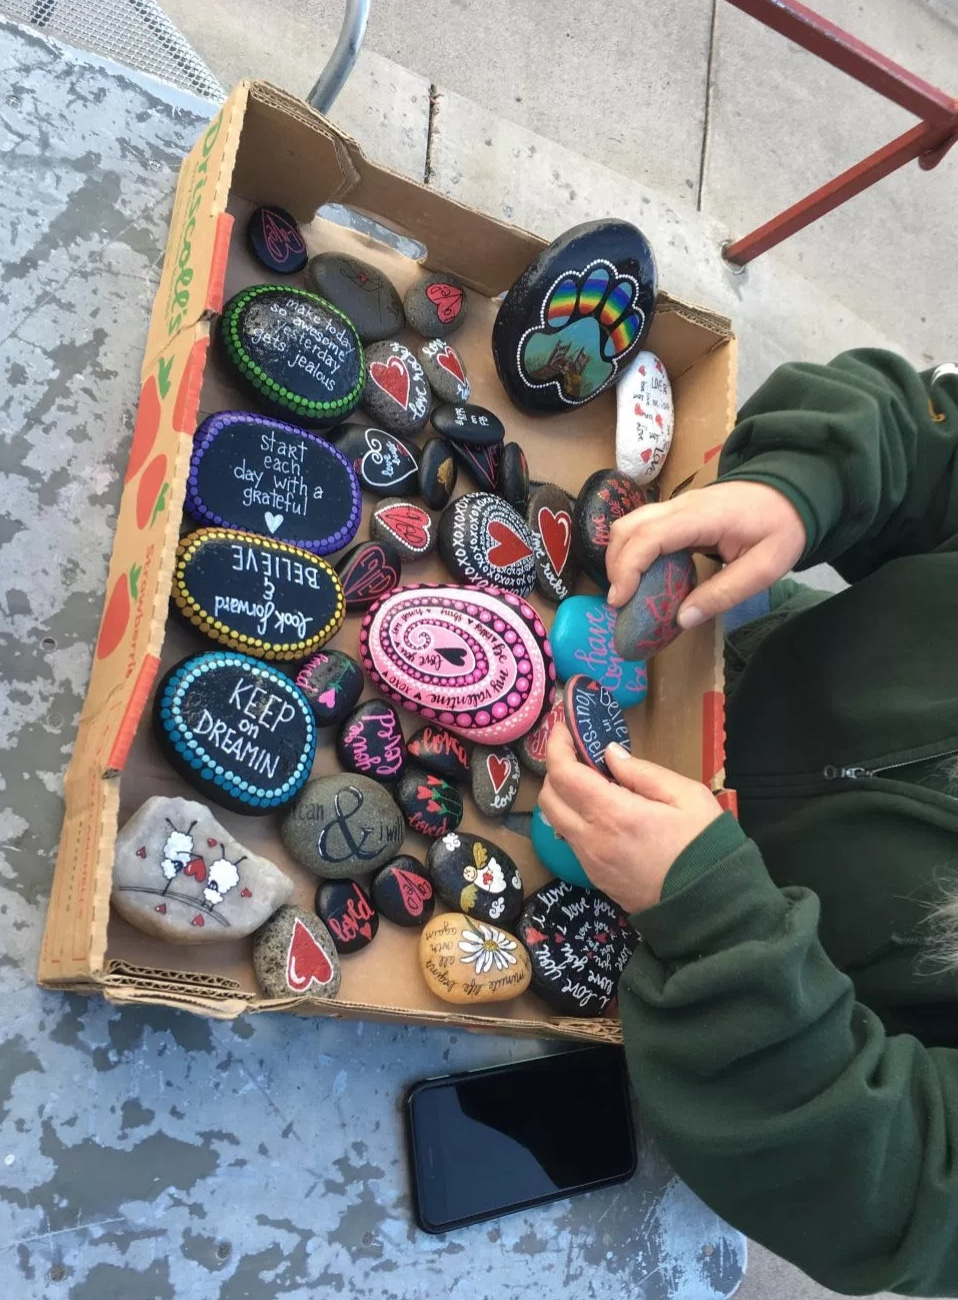 Handrich-Walker, who says she has planted hundreds of rocks around Reno since the group was founded, added that the time it takes to paint a rock depends on its size.  She said it can take anywhere from one to two hours or several minutes. Photo and reporting by Kevin Sheridan shared with Our Town Reno.